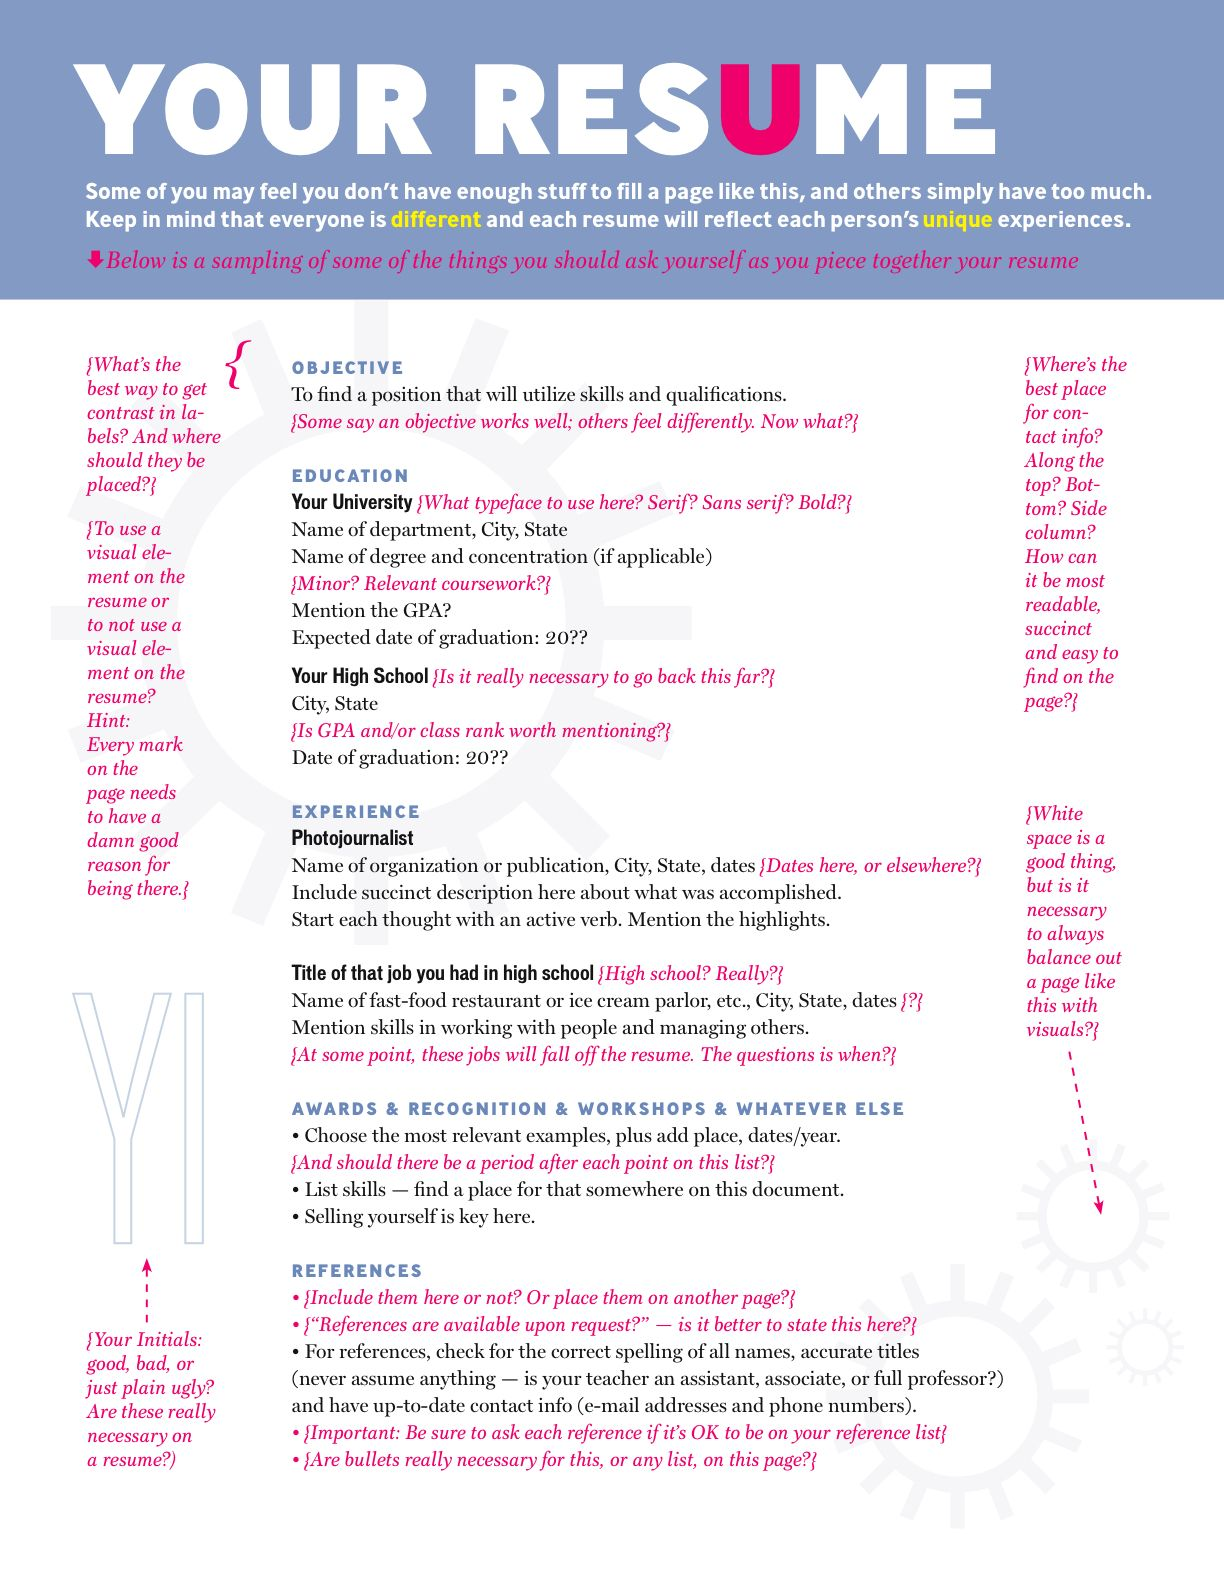 Guidelines for writing a great resume! Cover letter for